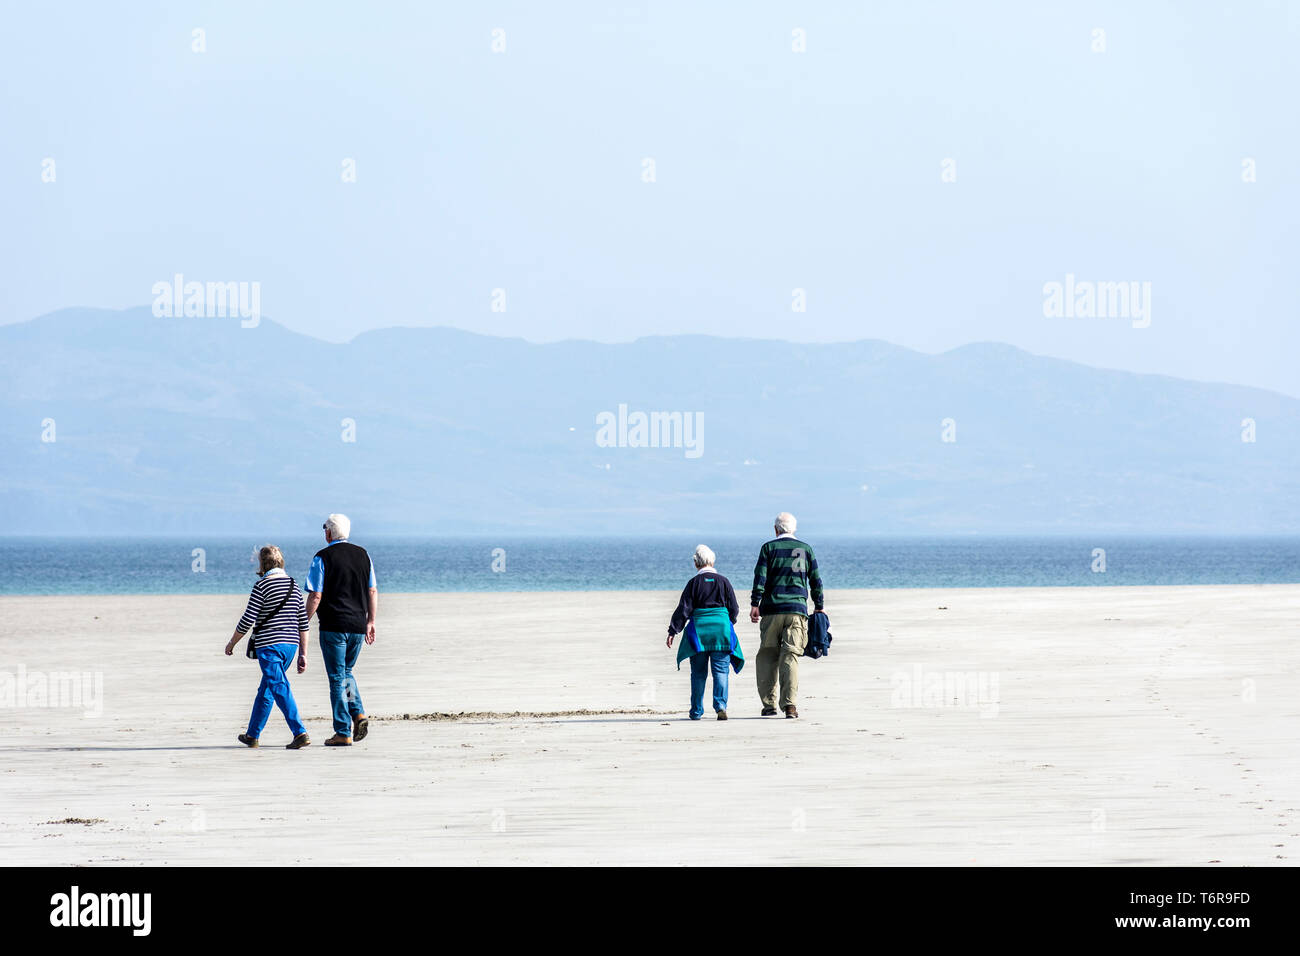 Two senior couples on a beach walking, County Donegal, Ireland - Stock Image